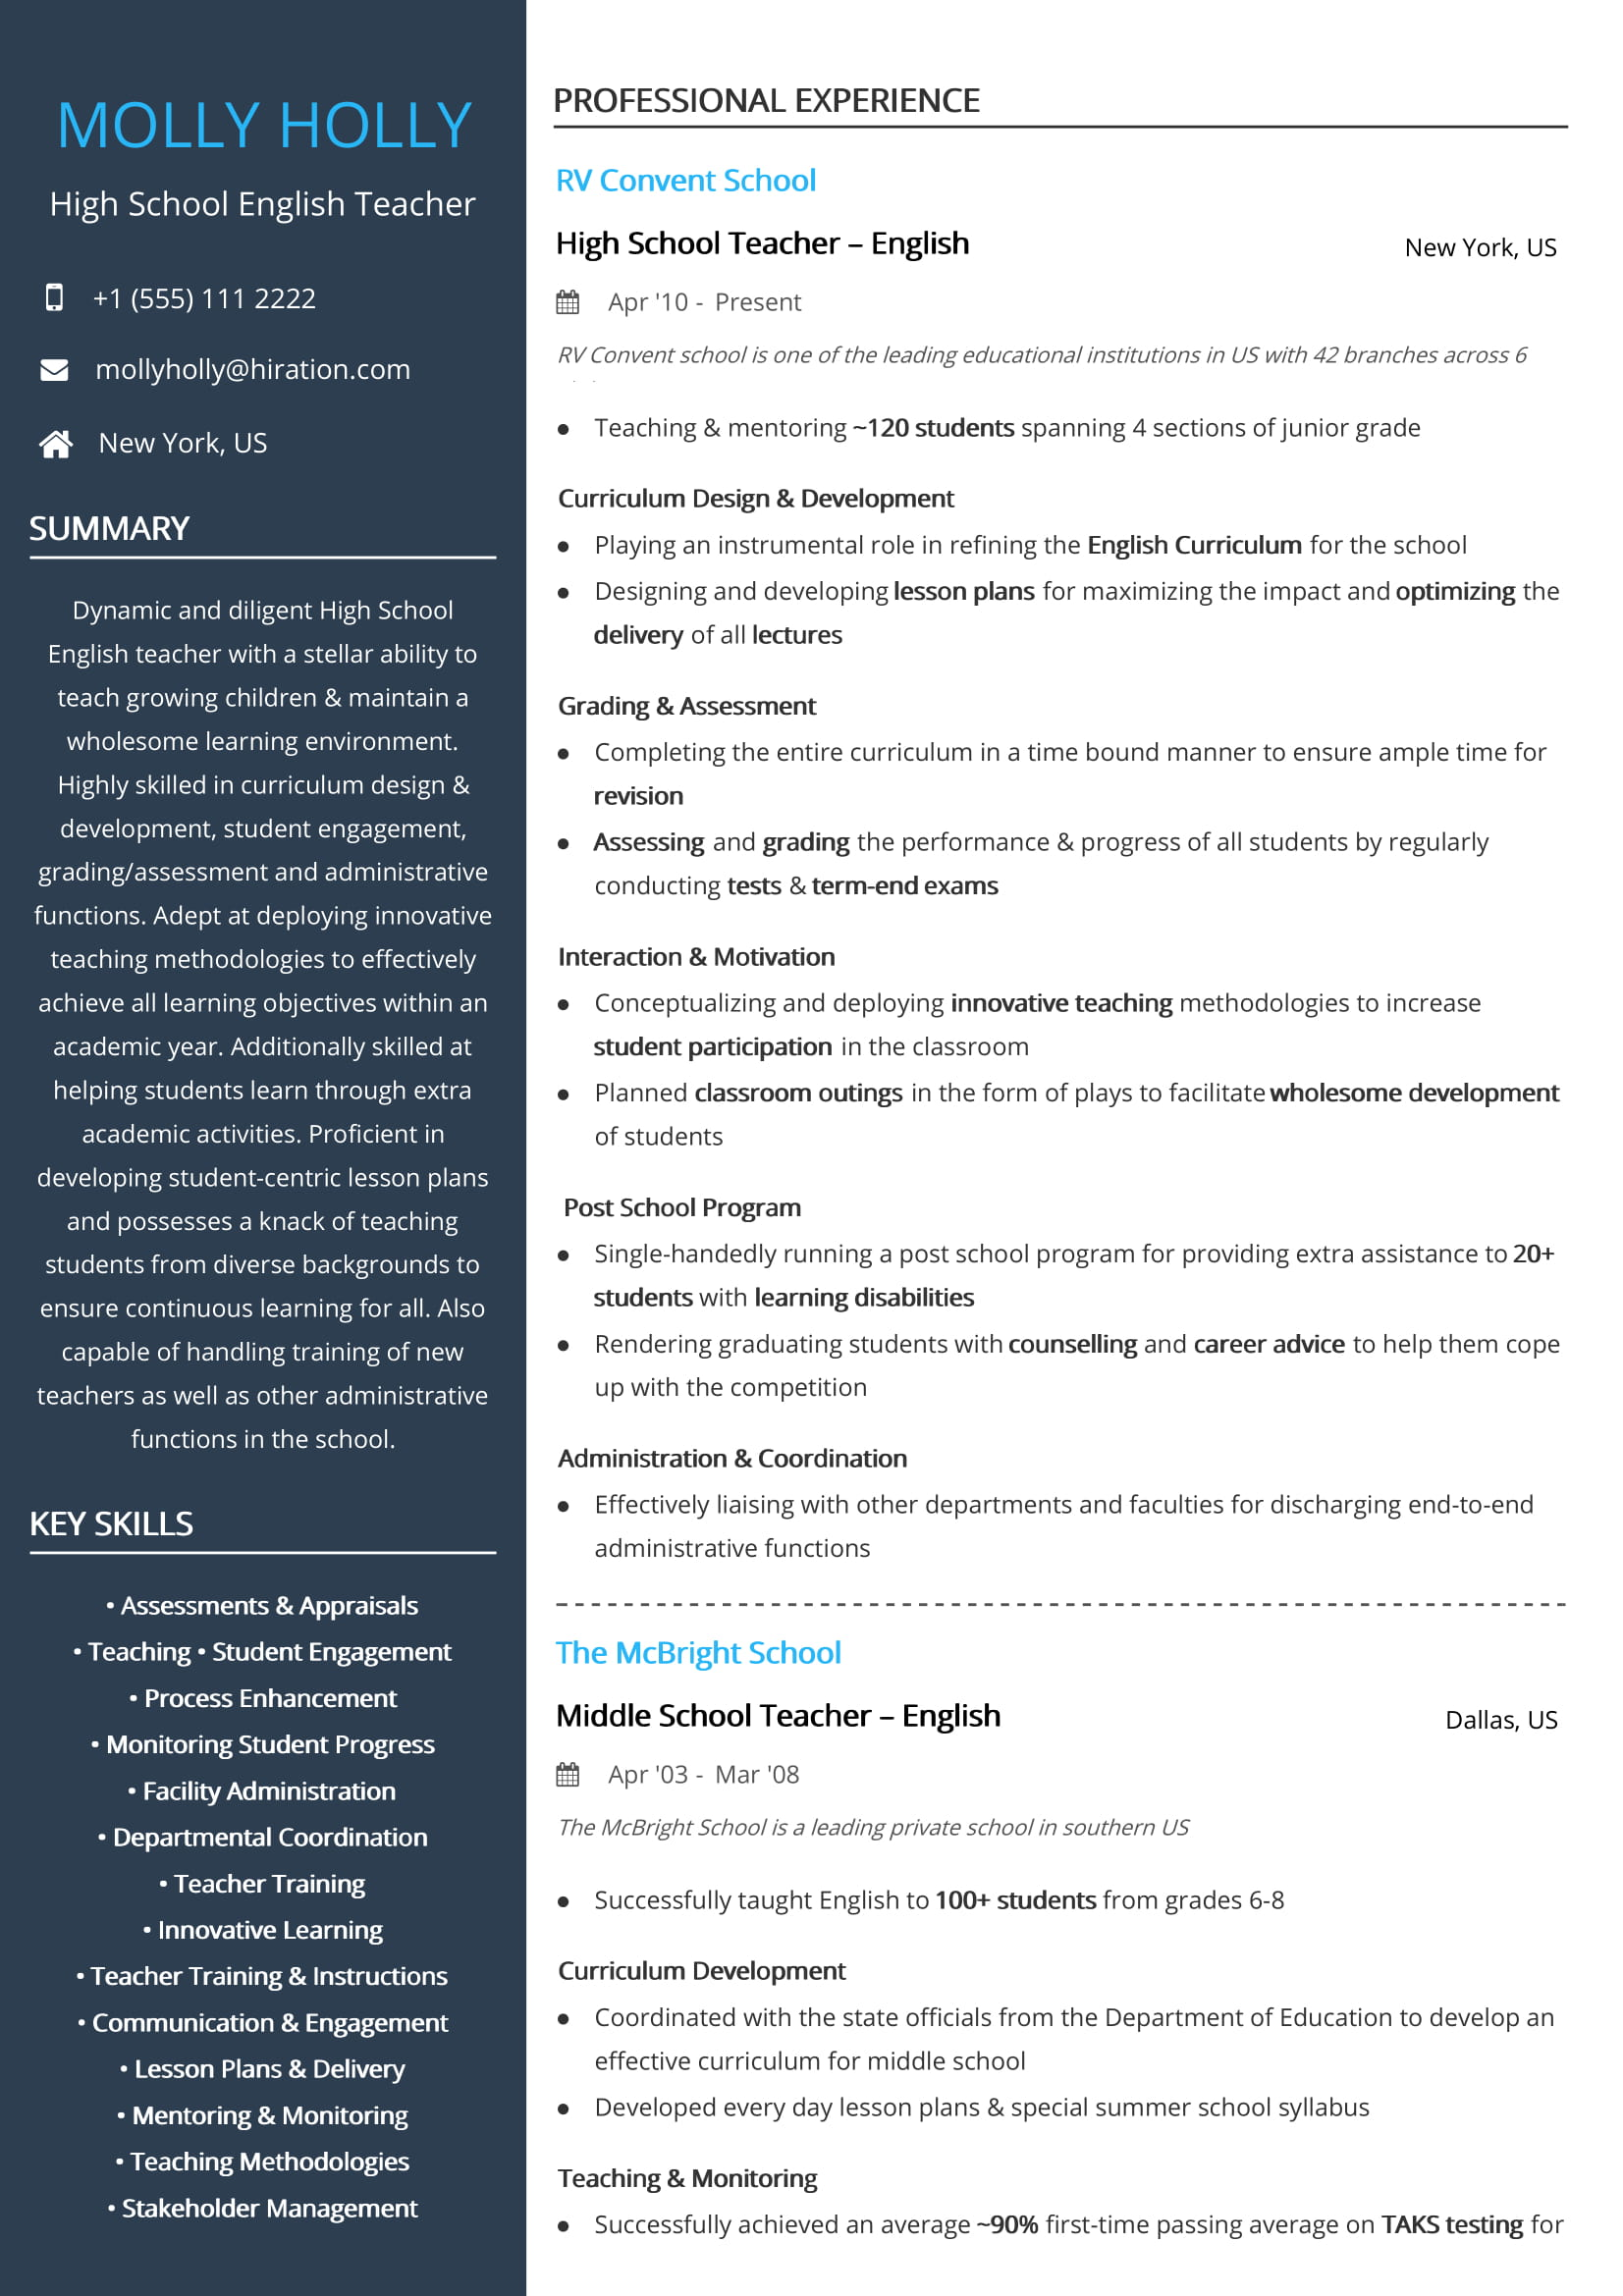 Free High School English Teacher Resume Sample 2020 By Hiration